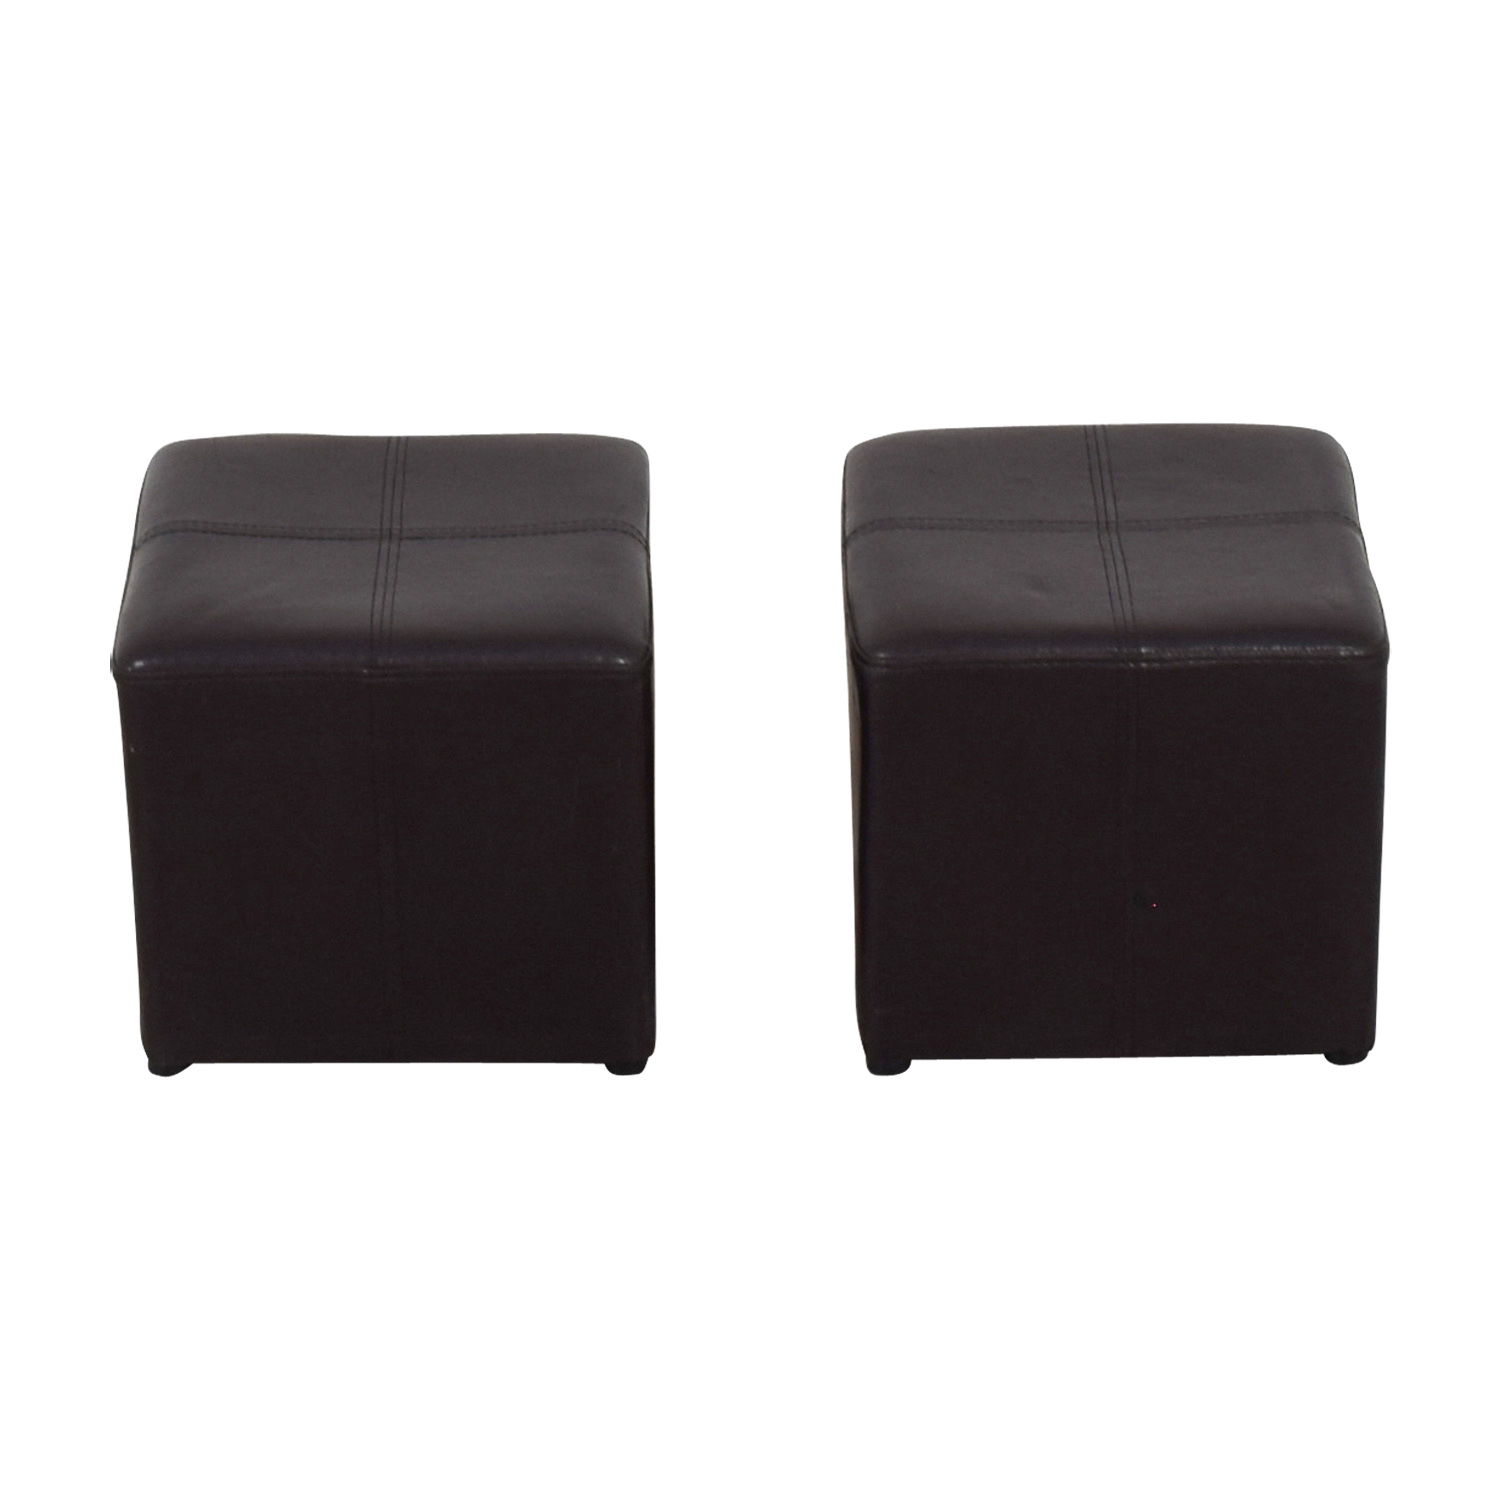 Brown Leather Stools / Ottomans